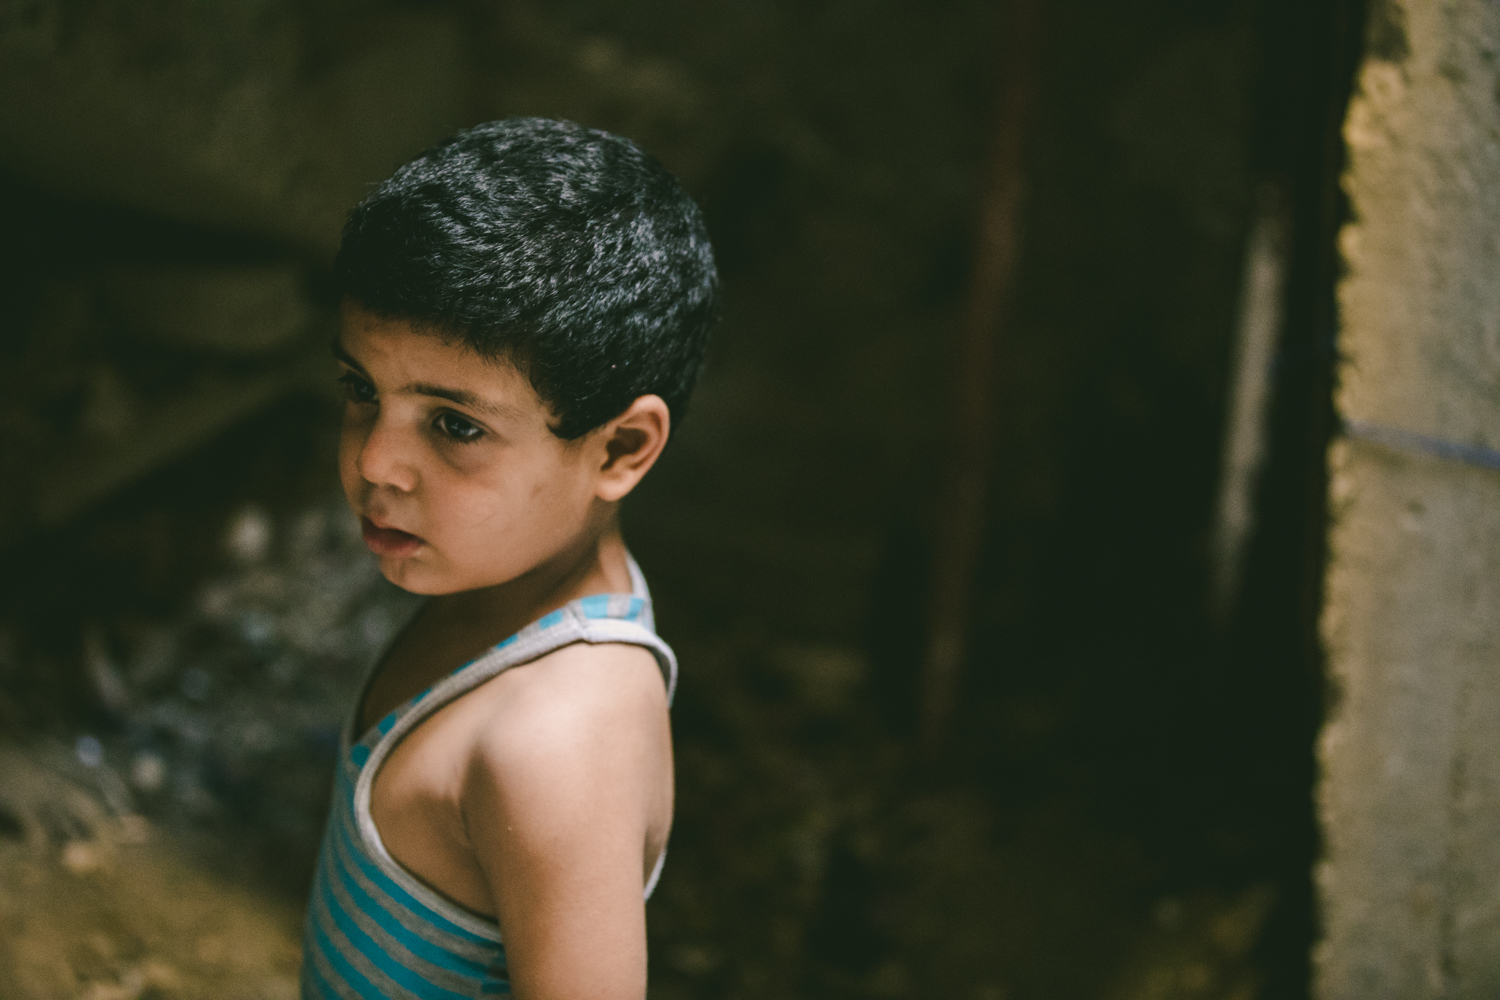 Young Palestinian child.